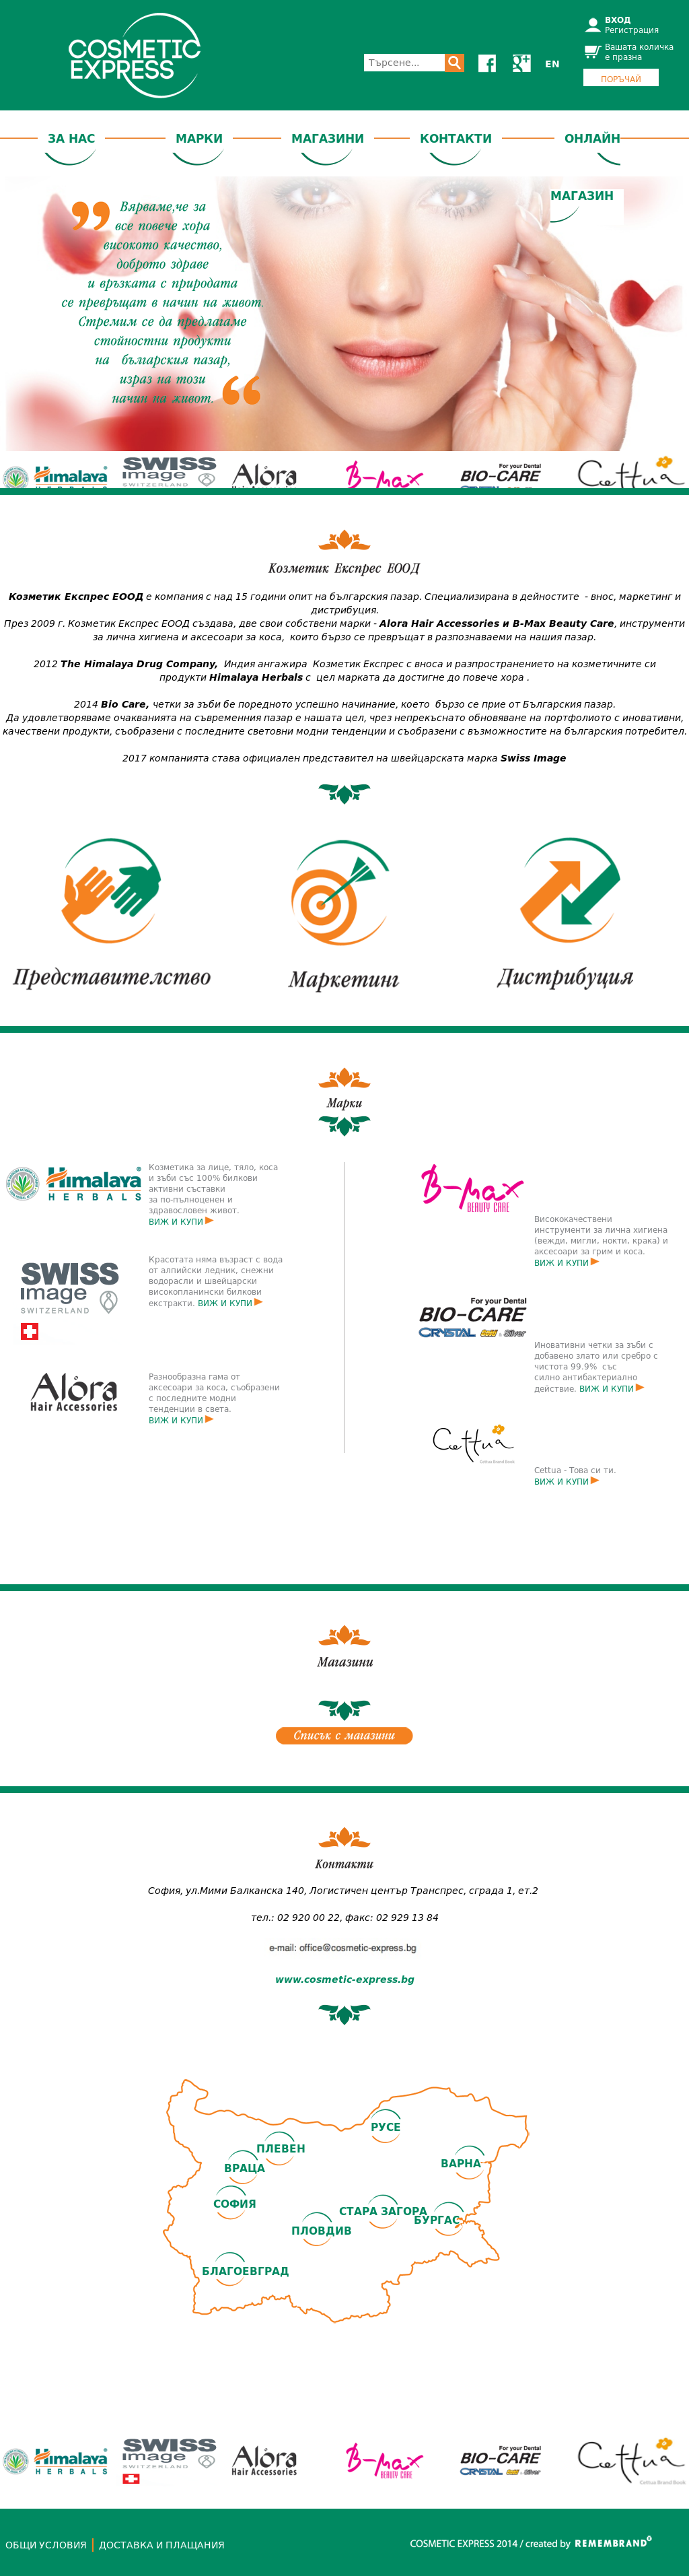 928e6b58032 Himalaya Herbals Bulgaria Competitors, Revenue and Employees - Owler Company  Profile